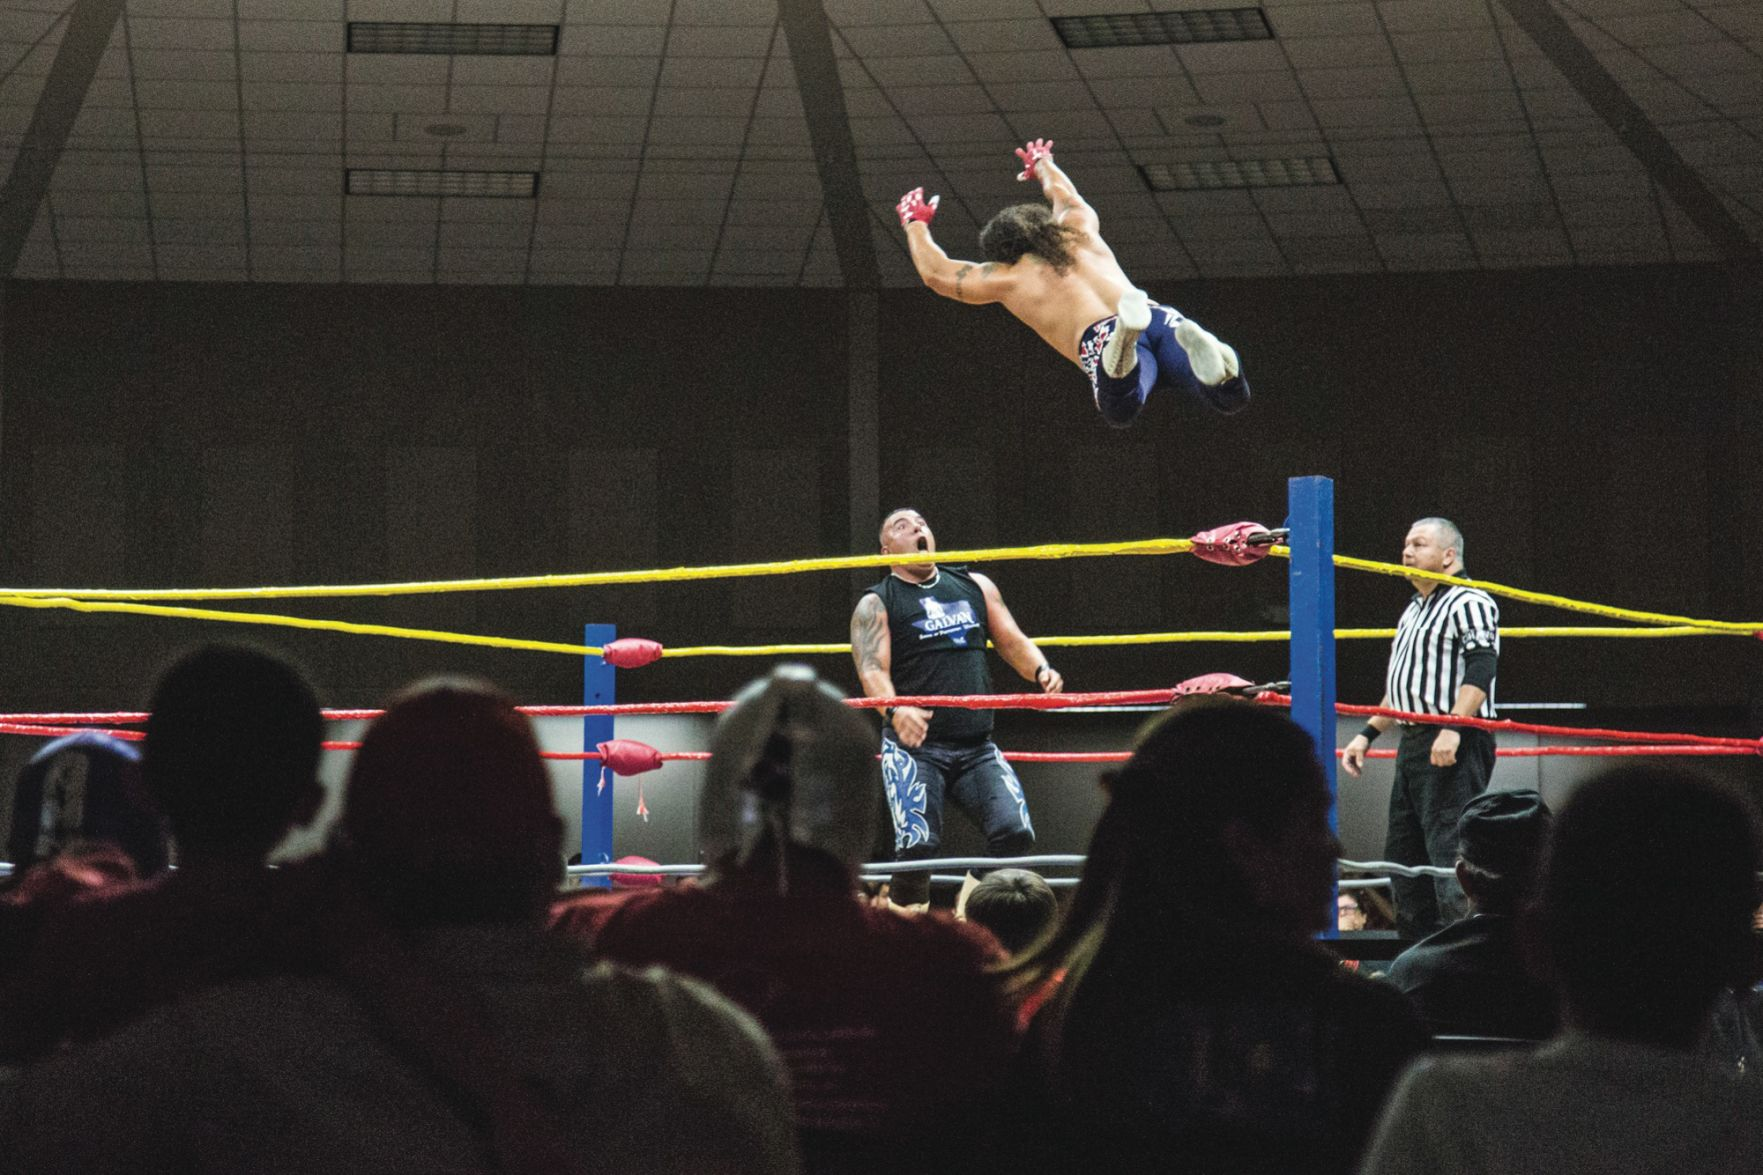 Vidios De Lucha Libre Lucha Libre Comes To Victoria Community Center W Video